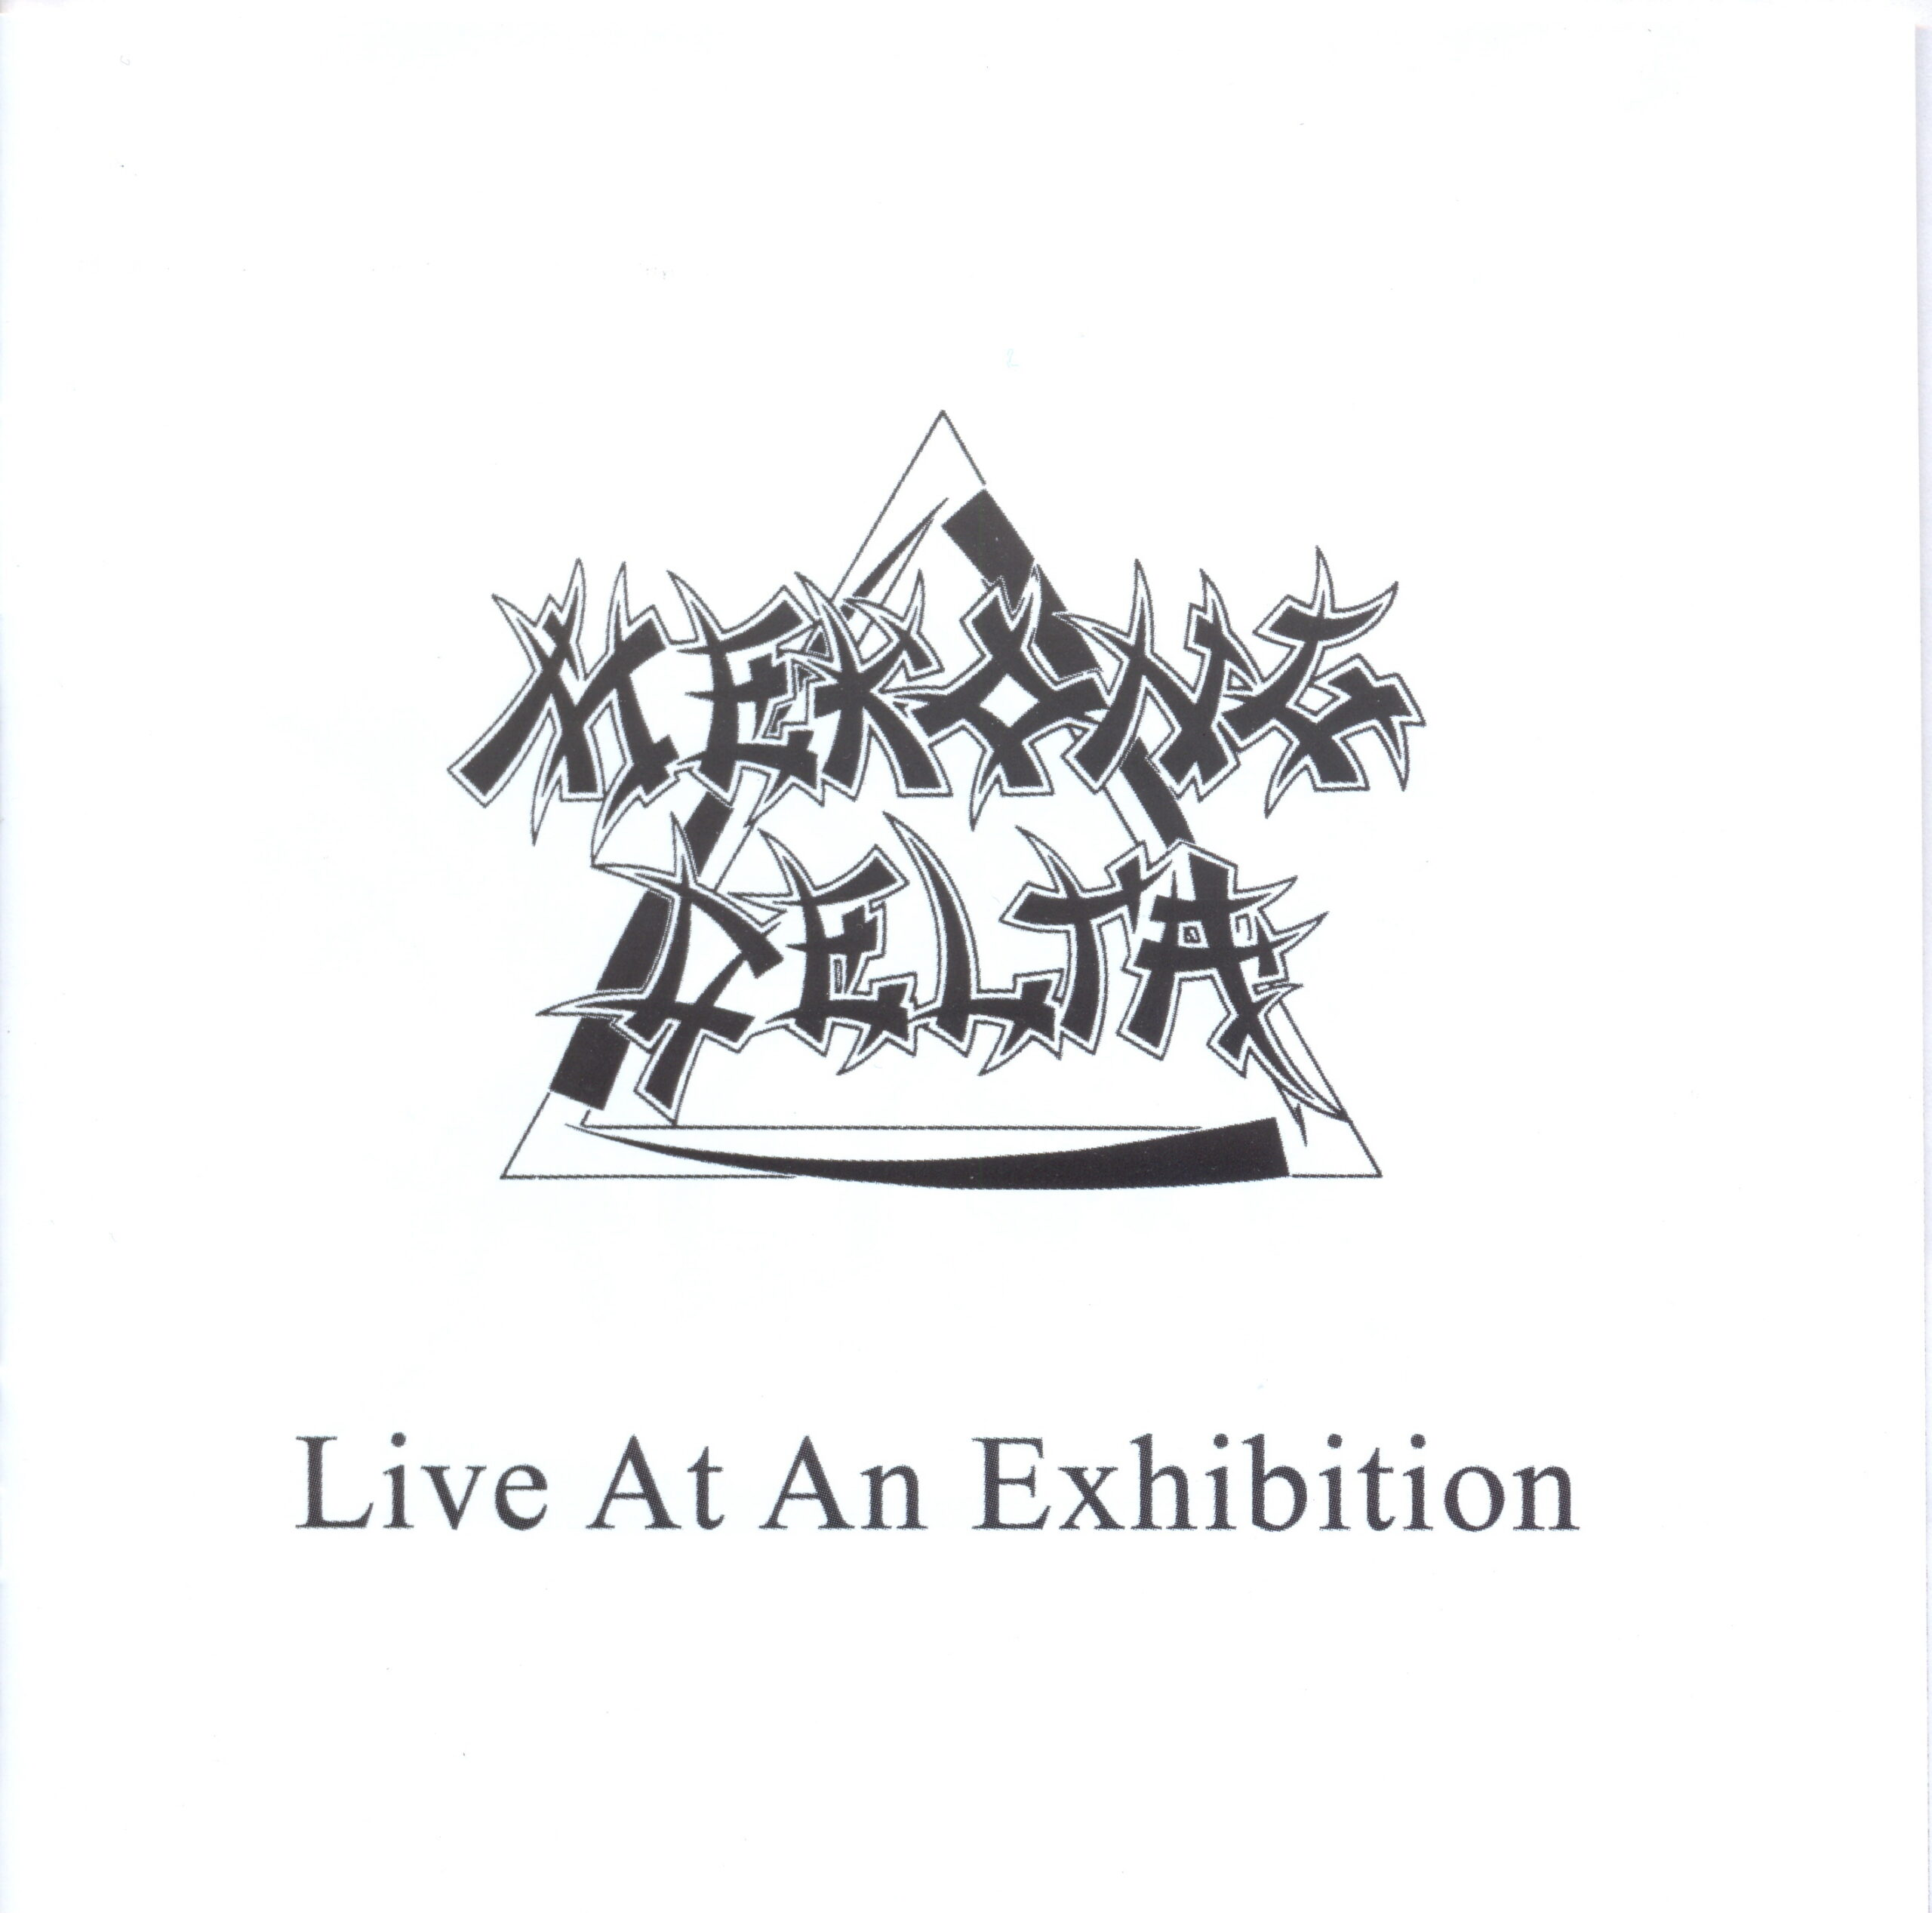 Mekong Delta — Live At An Exhibition (1991)